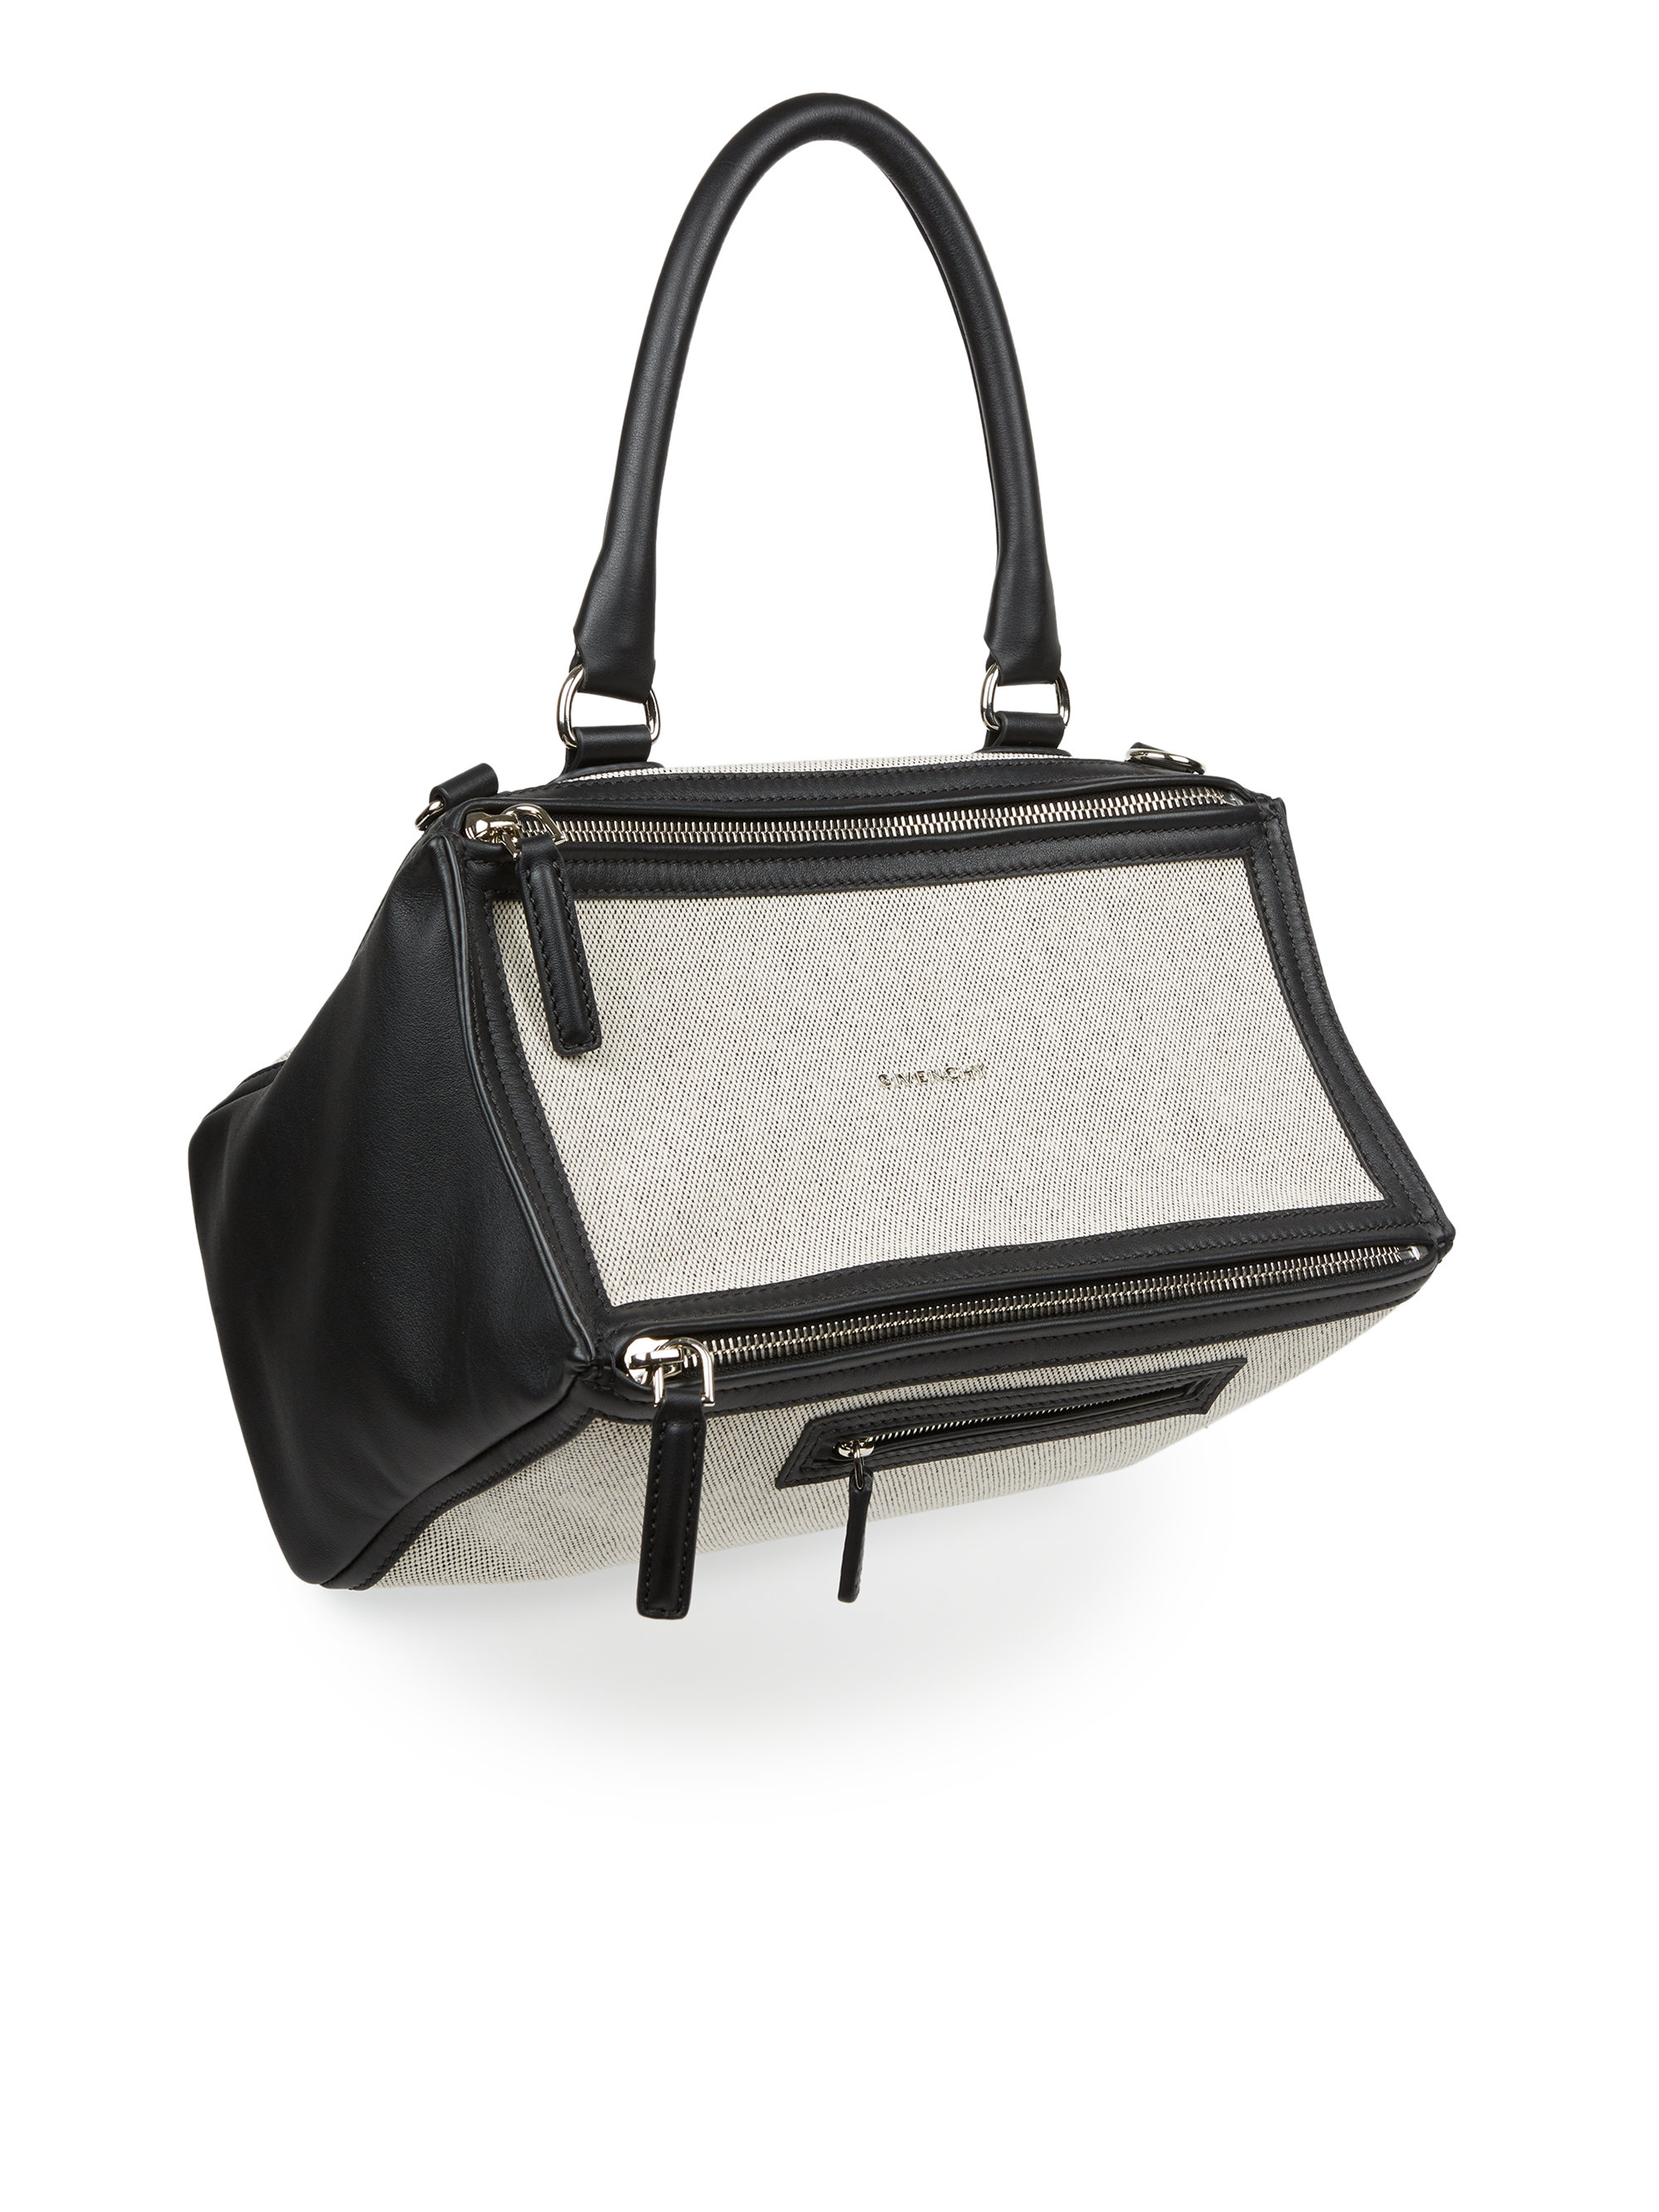 Lyst - Givenchy Pandora Medium Leather   Canvas Shoulder Bag in Black fc731edfe3dfc